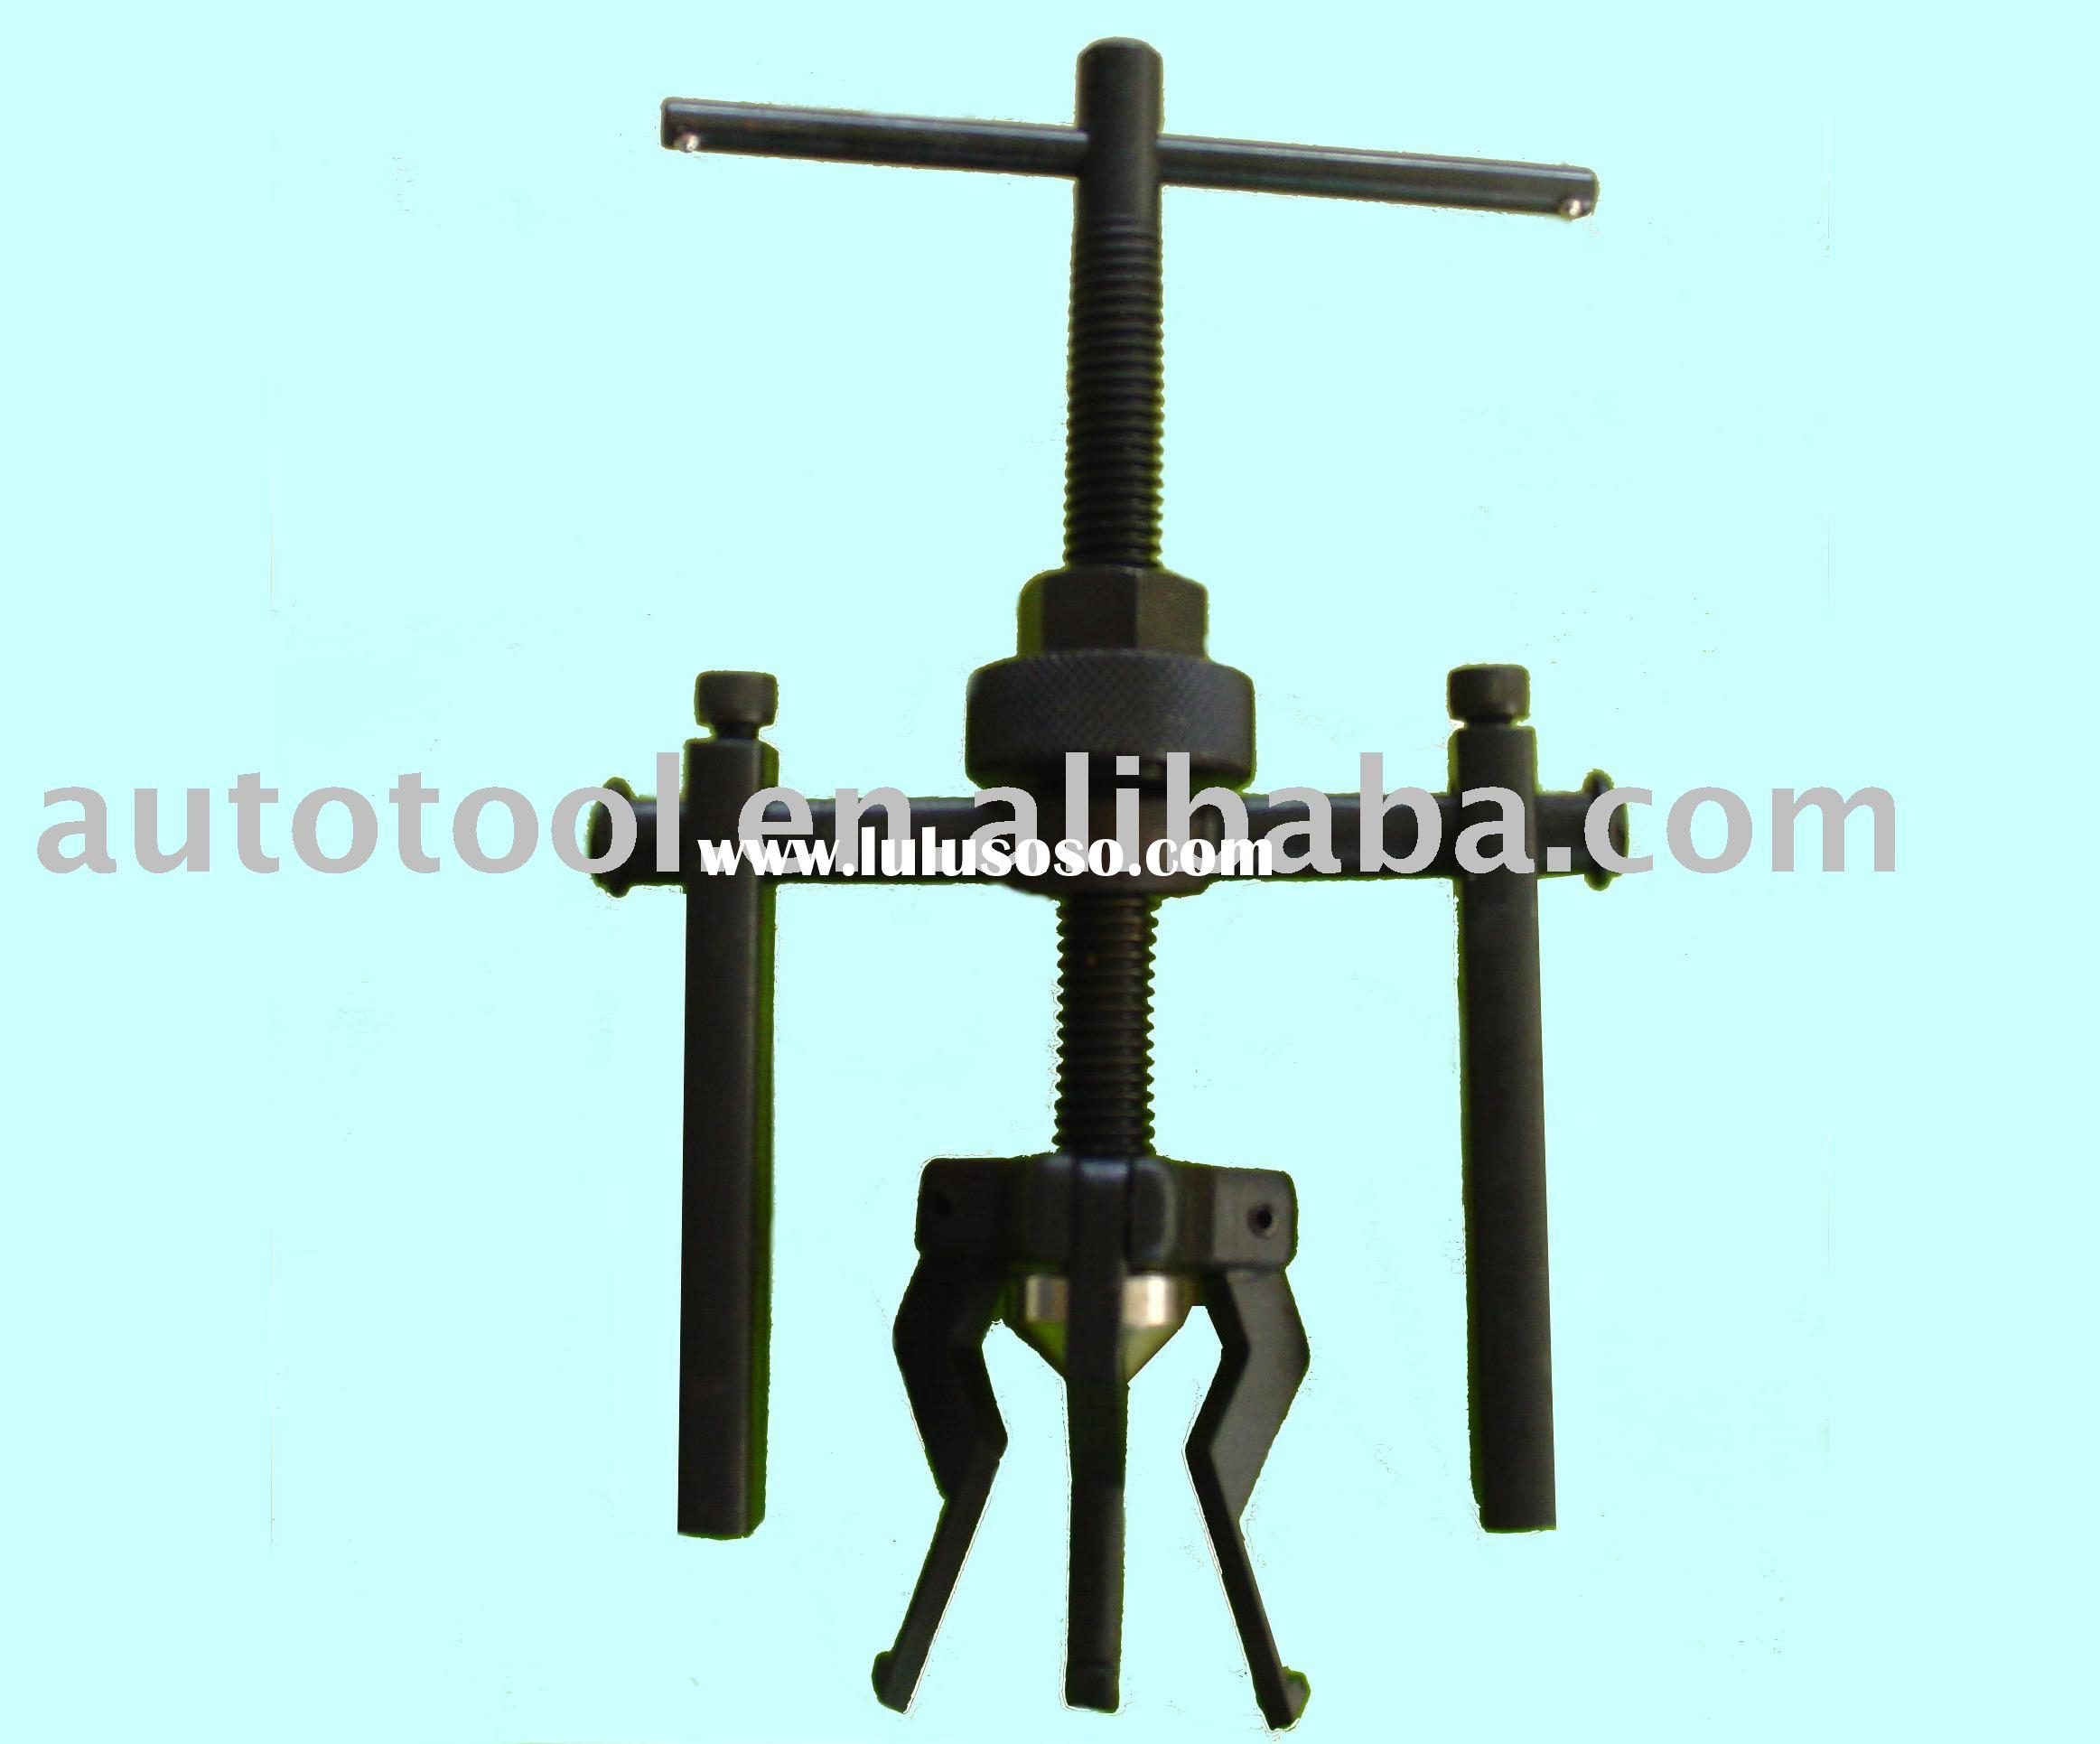 Long Jaw Bearing Puller : Long jaw bearing puller for sale price taiwan